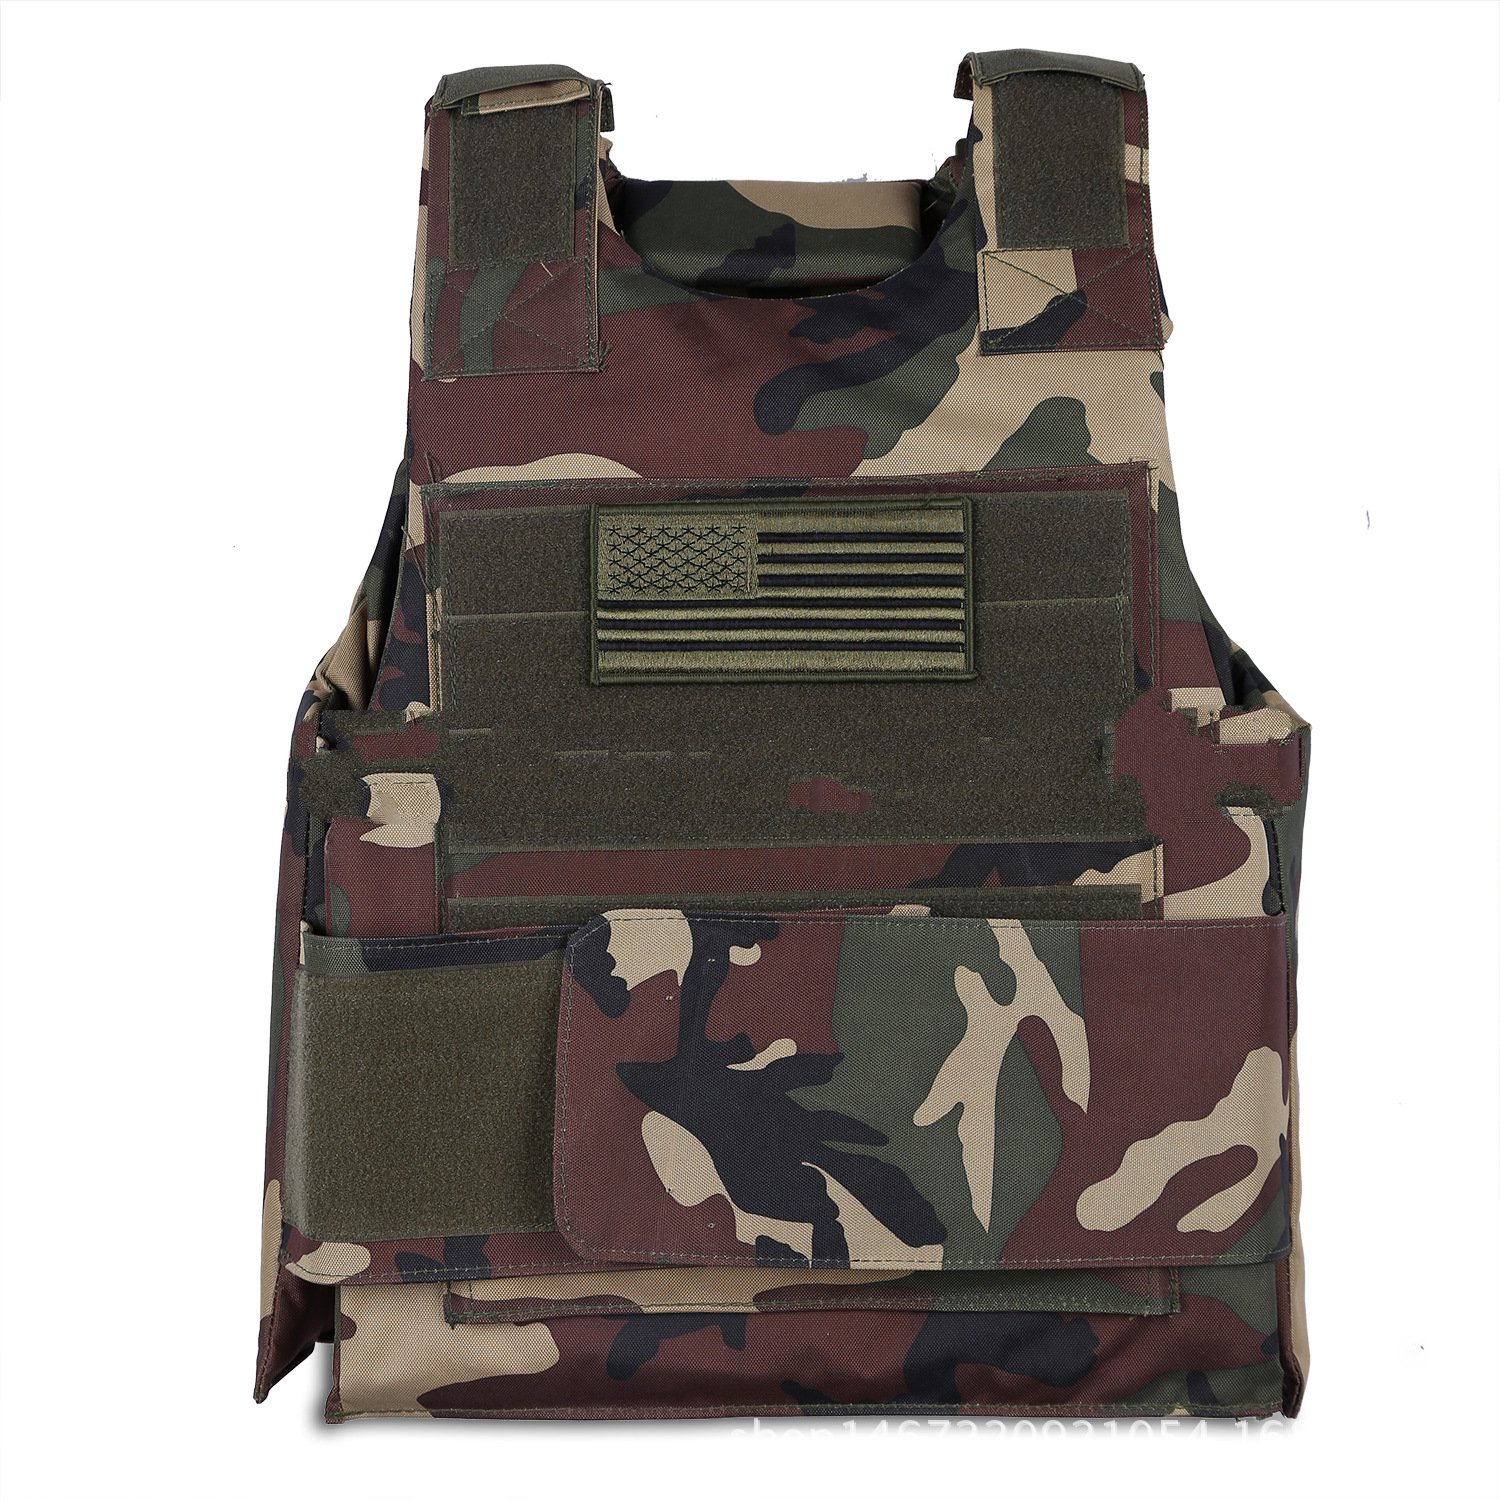 все цены на Jungle camouflage tactical  vest CS  camouflage онлайн